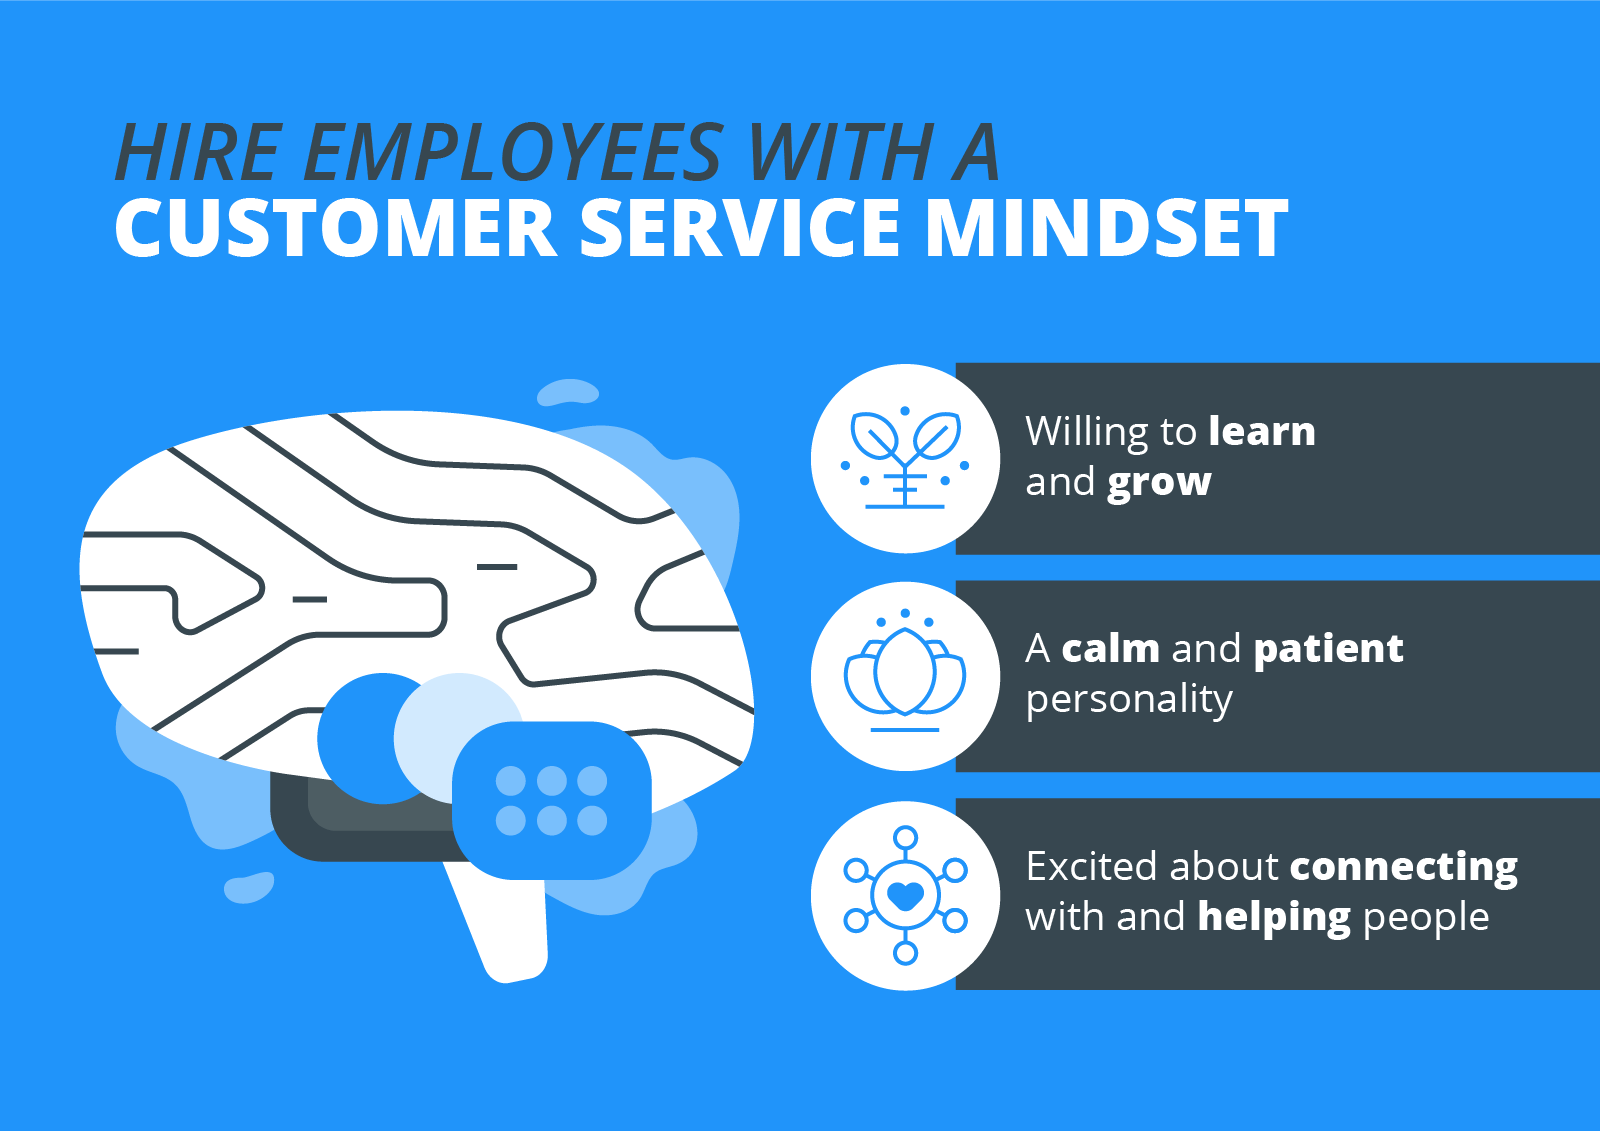 hire employees with a mindset for customer service, willingness to grow, patient, and excited about helping people.